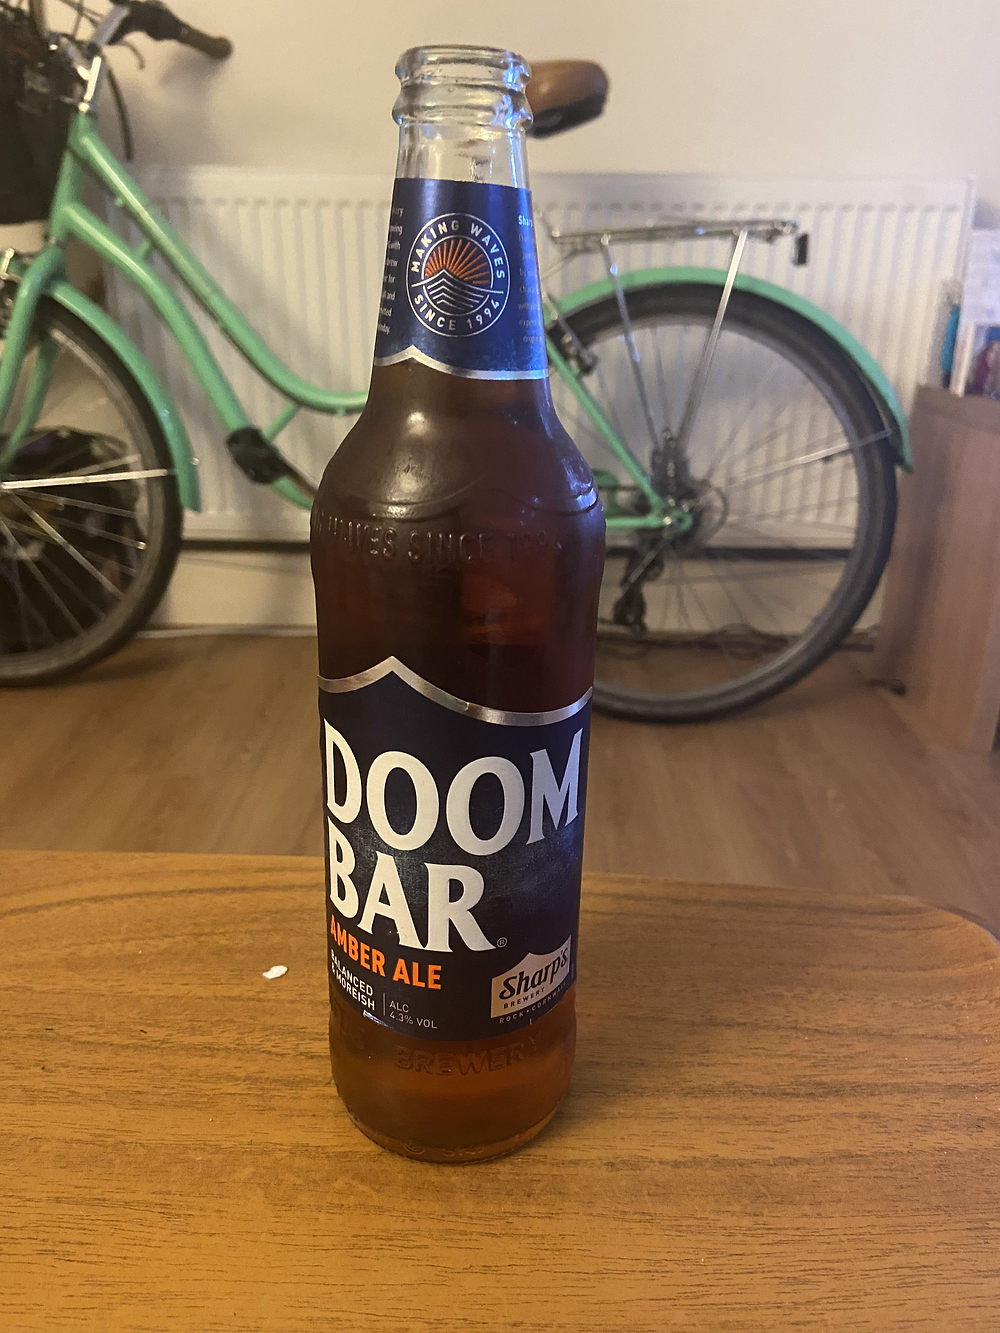 Doom bar by Sharp's brewery - Brew day beer